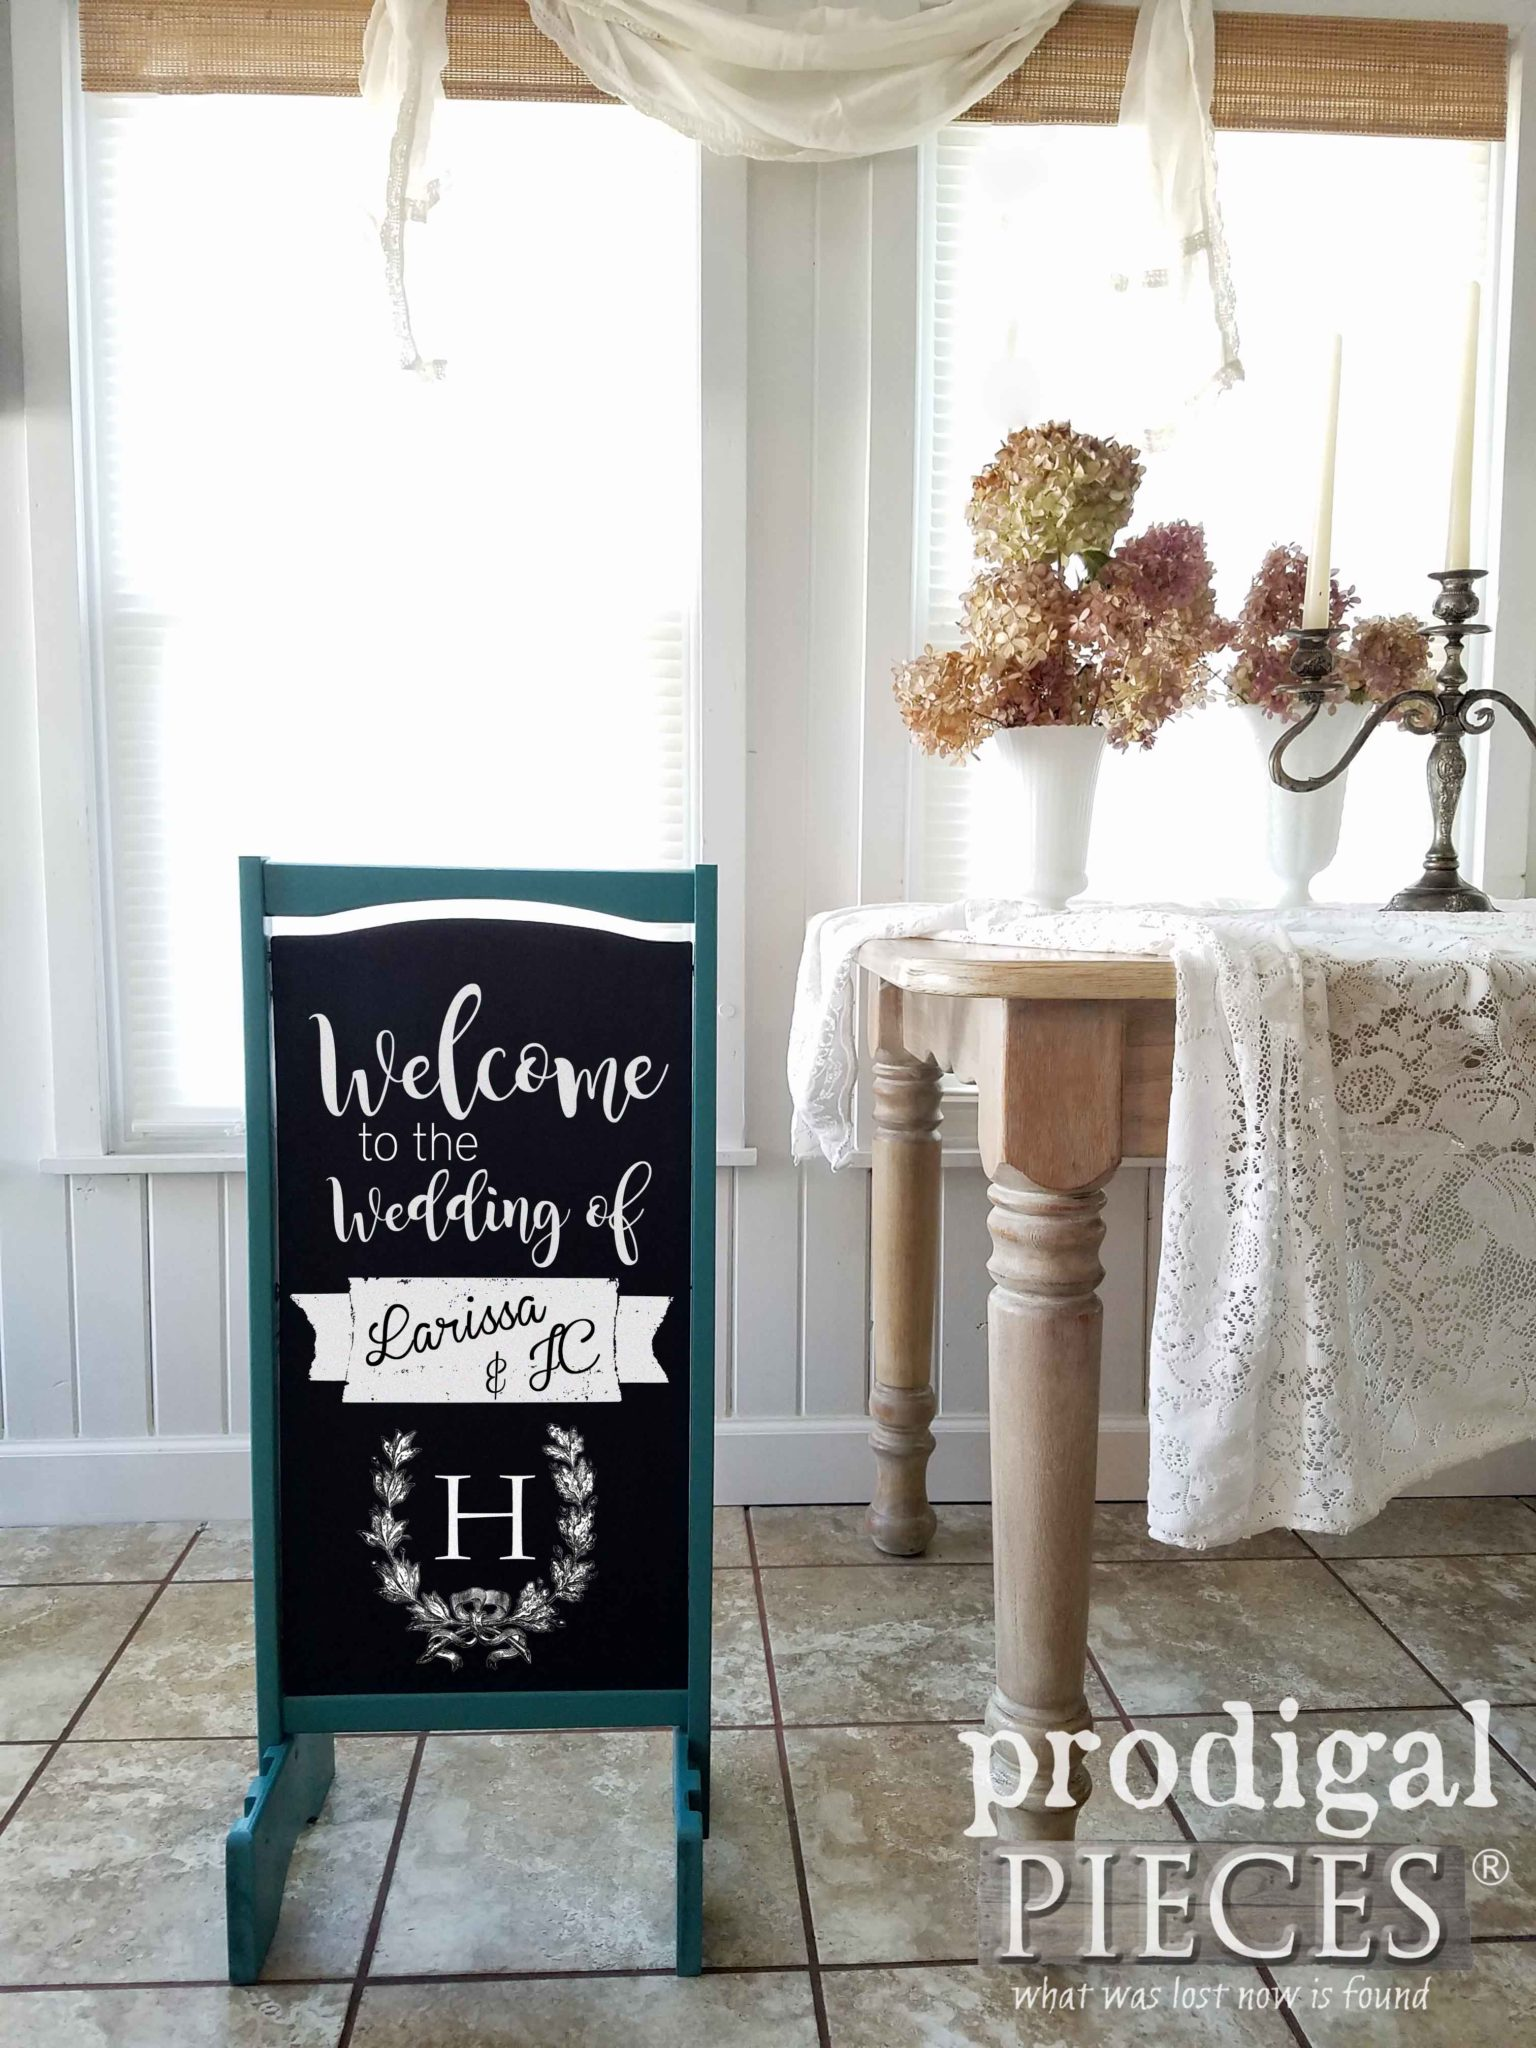 DIY Wedding Chalkboard Sign from Repurposed Items by Larissa of Prodigal Pieces | prodigalpieces.com